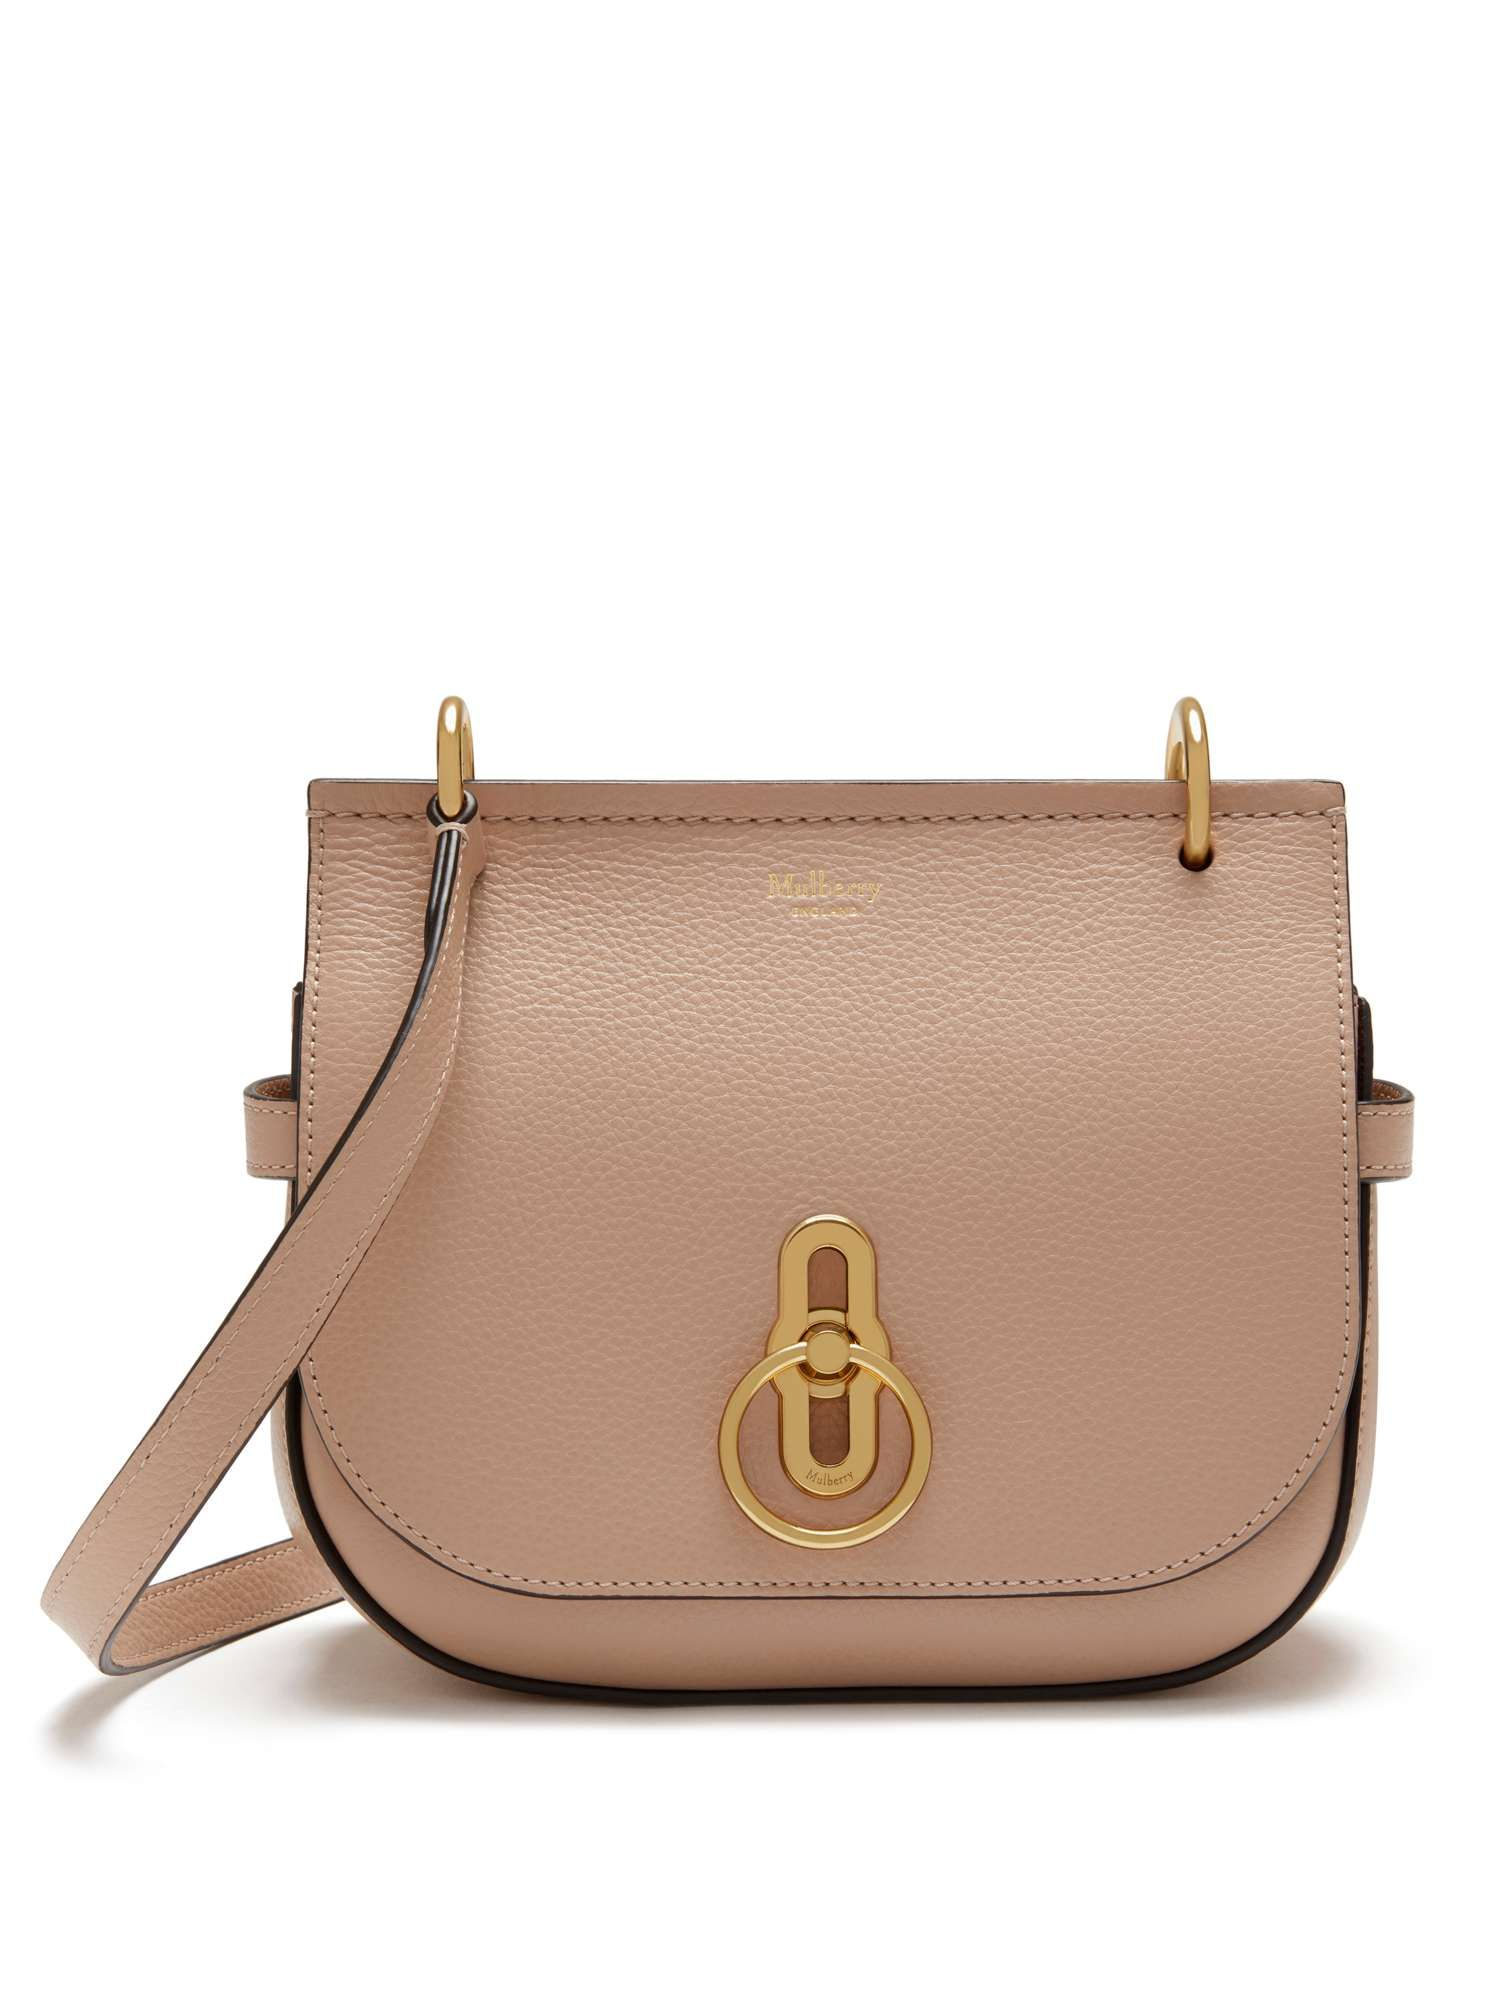 502b9753df9a Mulberry Small Amberley Satchel Bag - House of Fraser